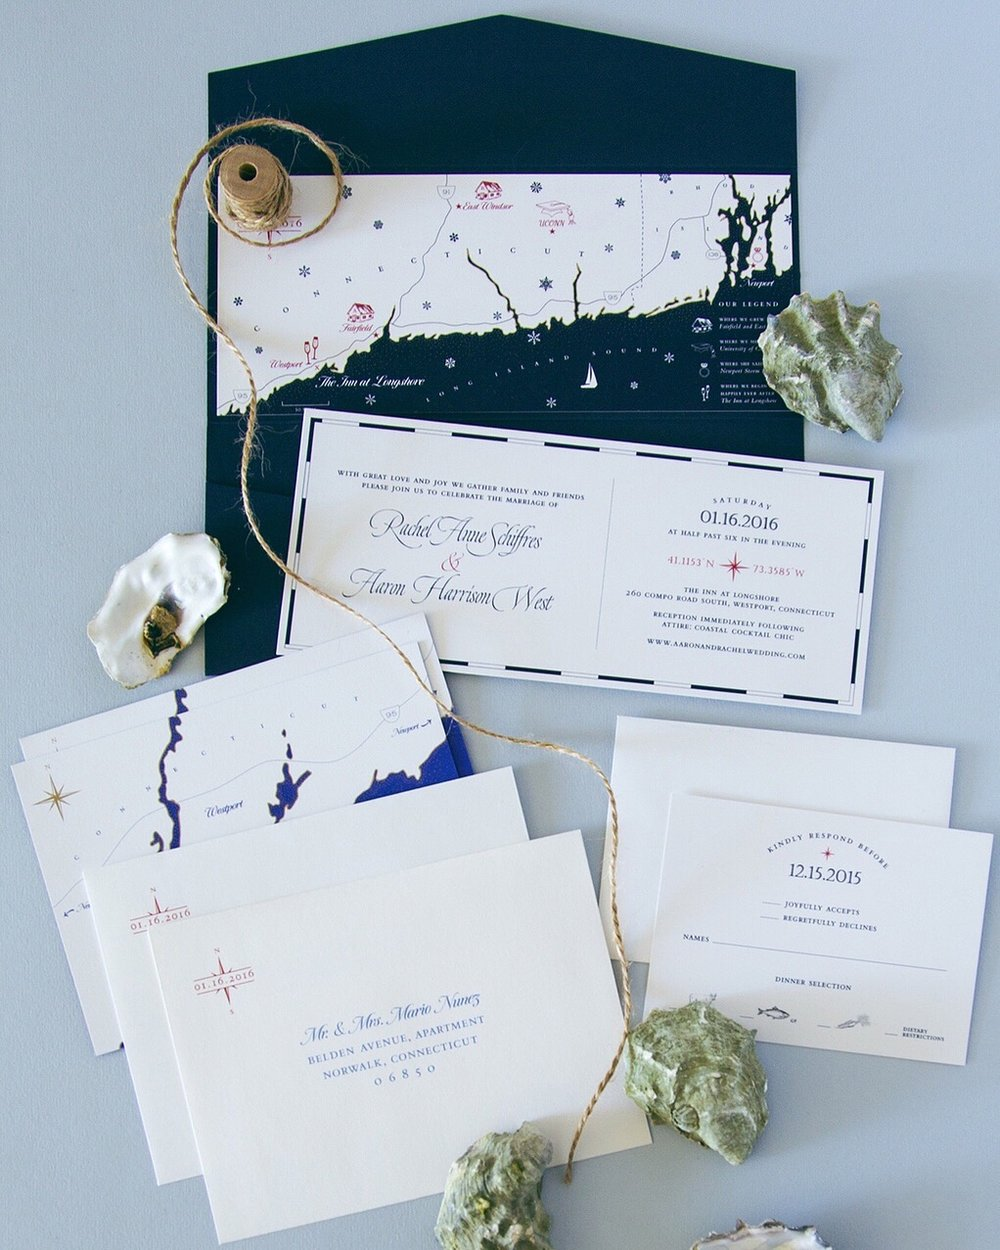 Nautical wedding invitation suite with custom illustrated map // drawn and designed by Chavelli www.chavelli.com // photo by Jenny Huang www.huang-jenny.com